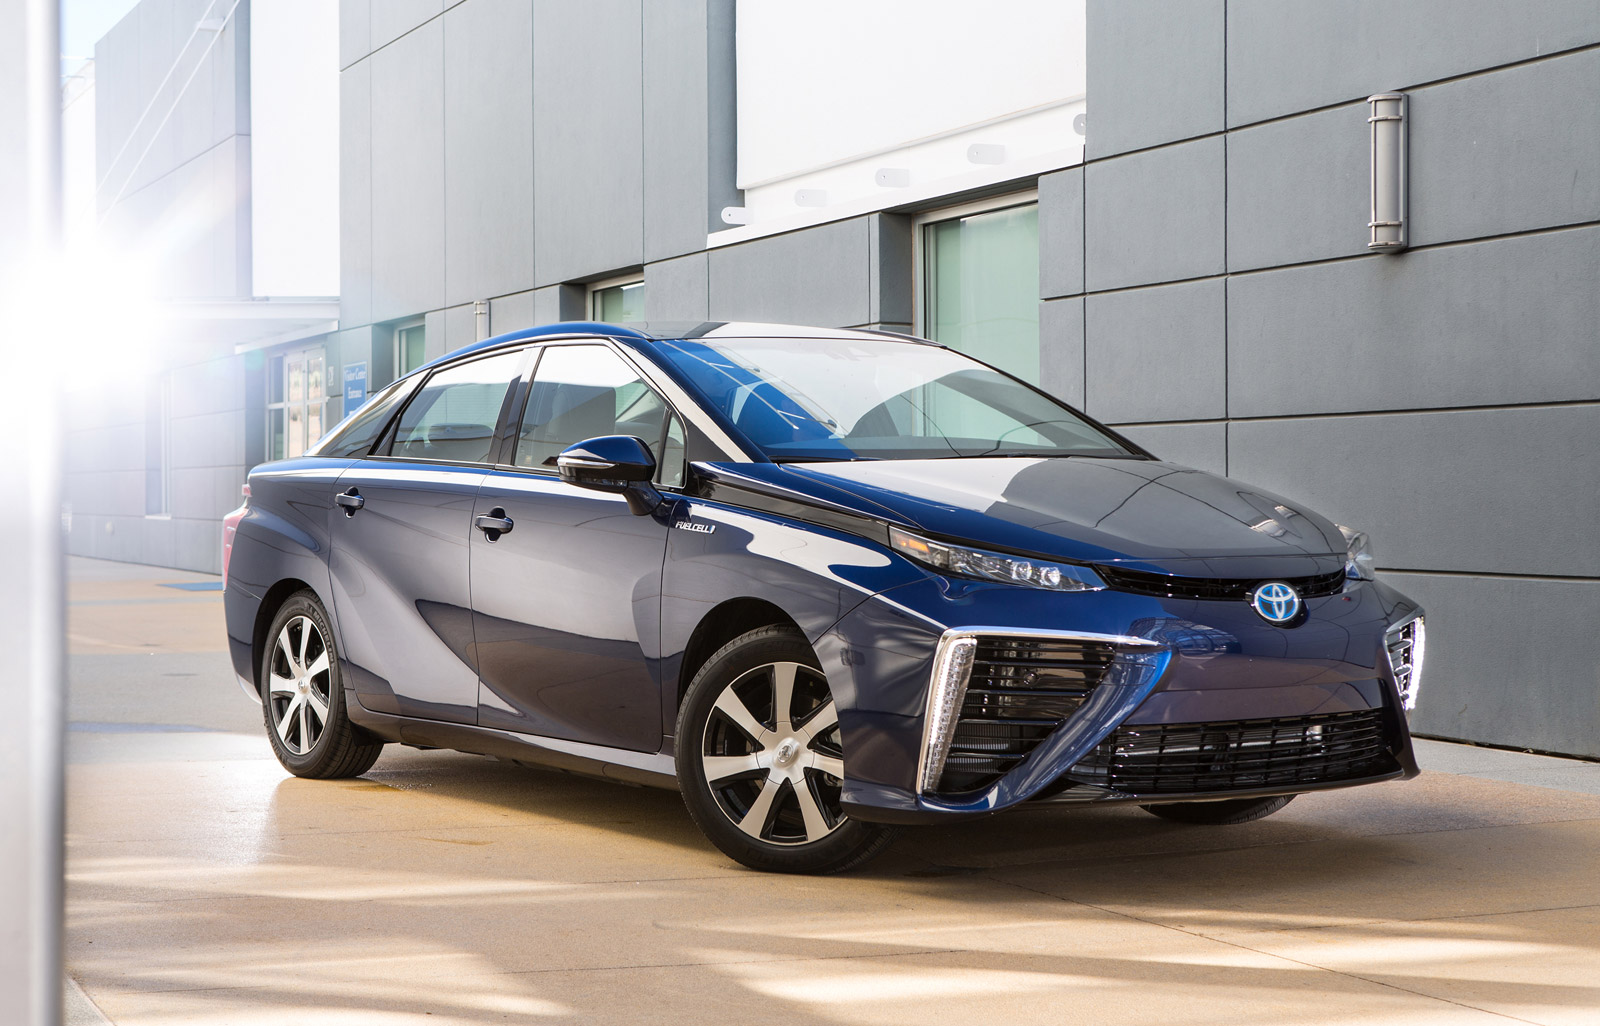 Toyota Mirai Test Drive Tesla Drag Race Cleaner Electric Cars The Week In Reverse Video